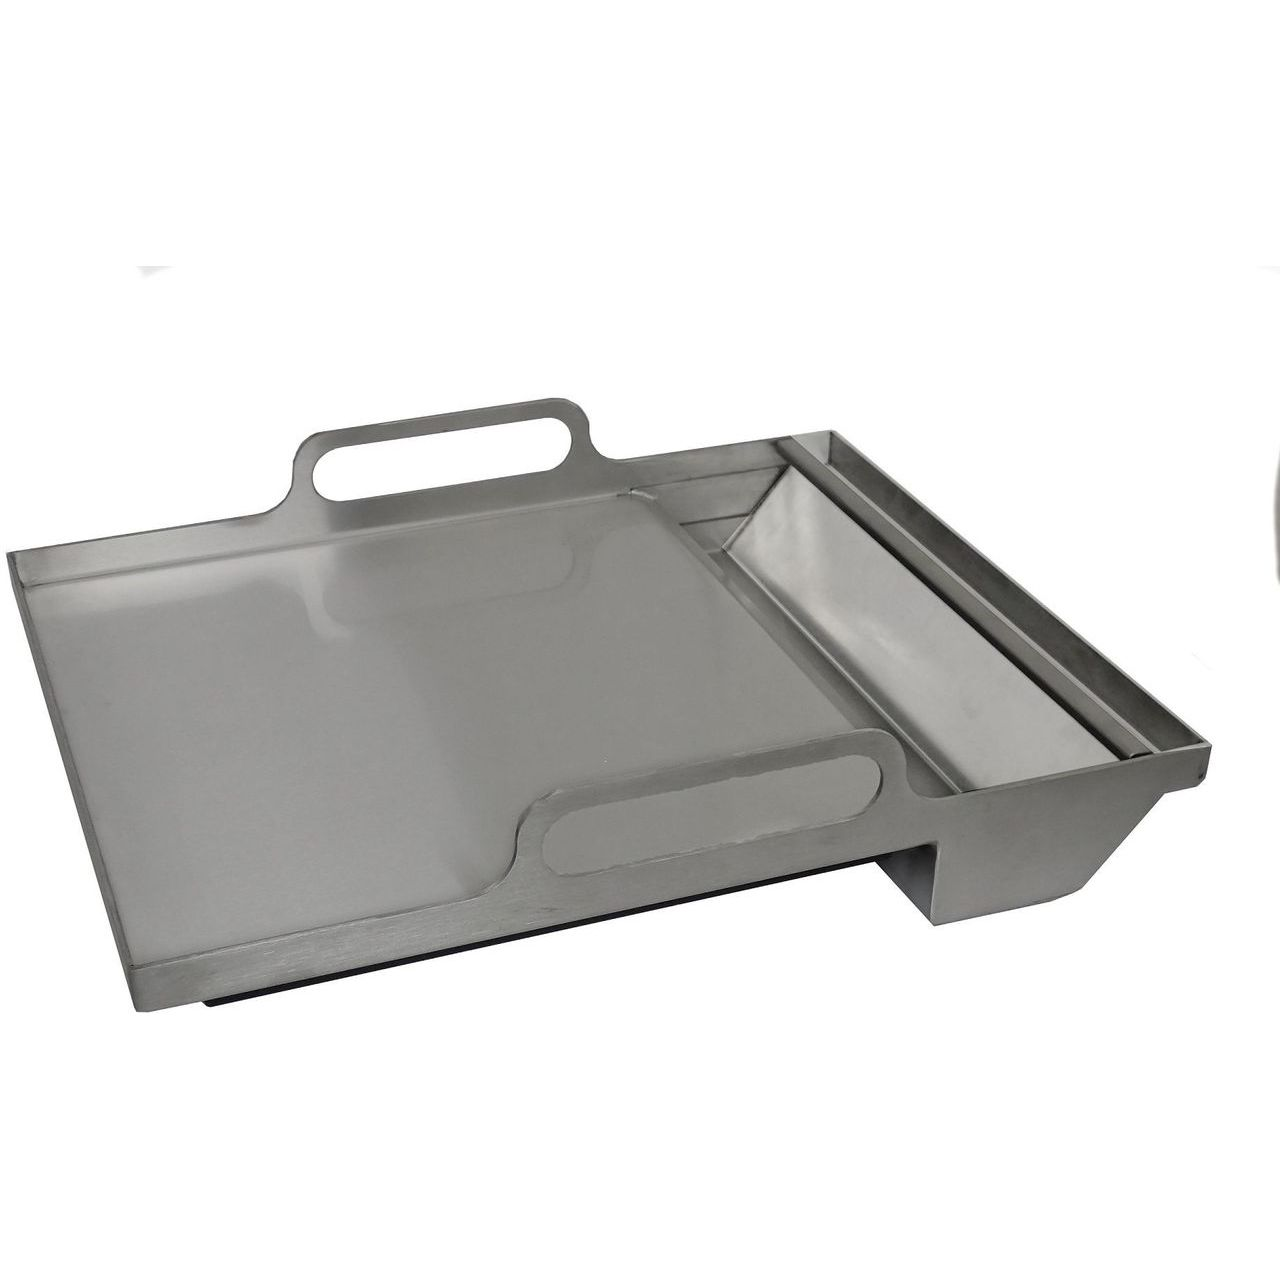 RCS Dual Plate Stainless Steel Griddle For Premier RJC Grills